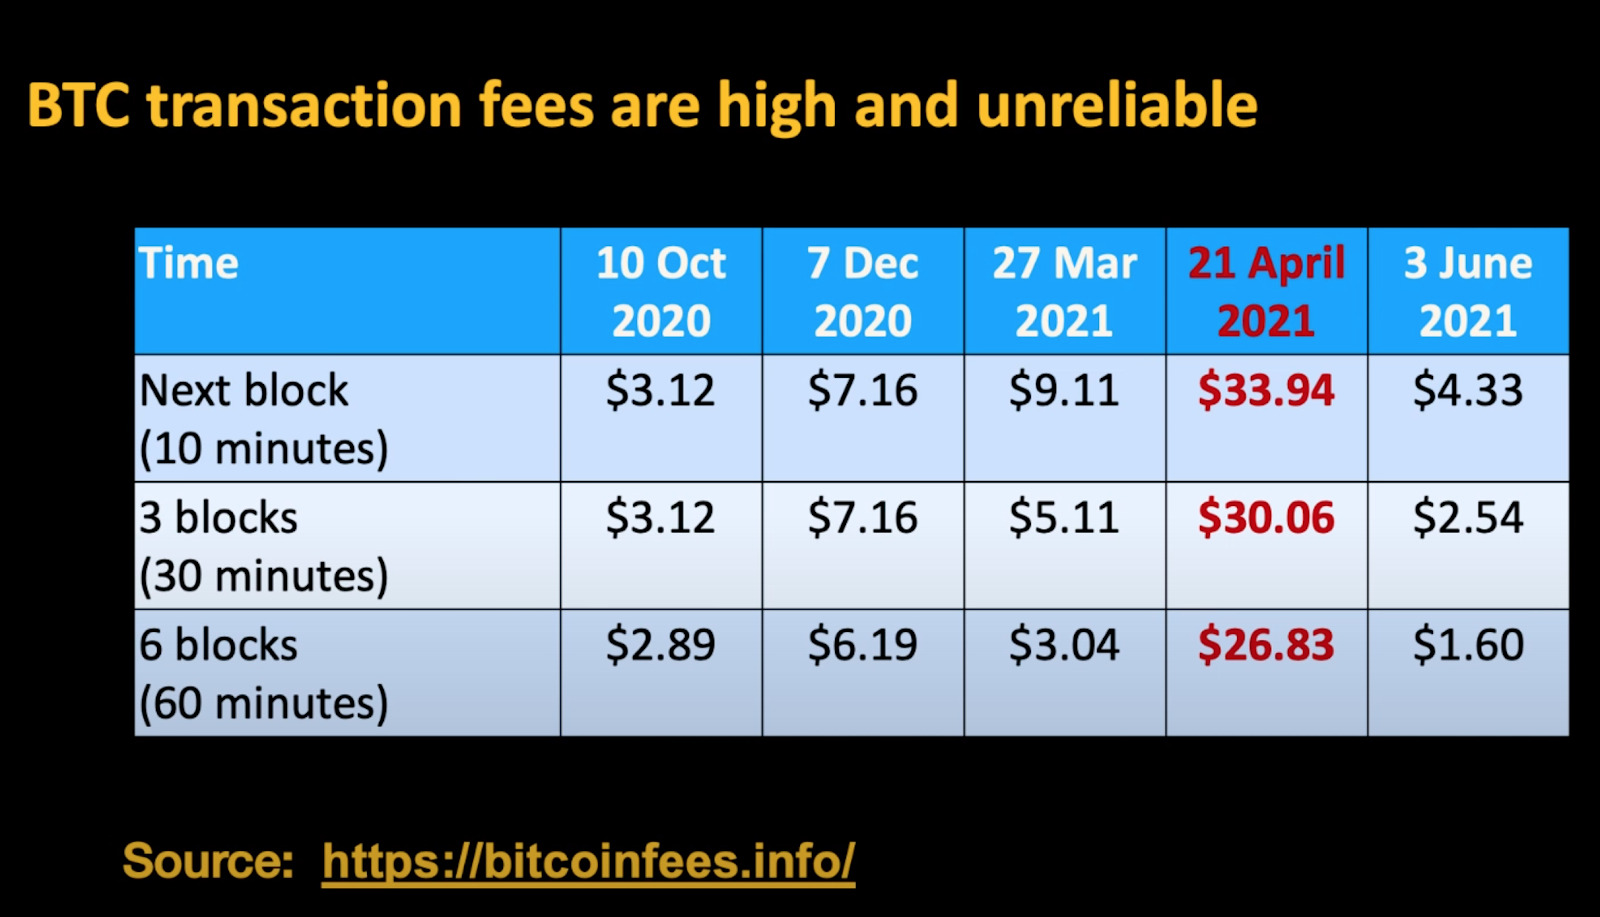 BTC plateaued with an average transaction fee of $4.33